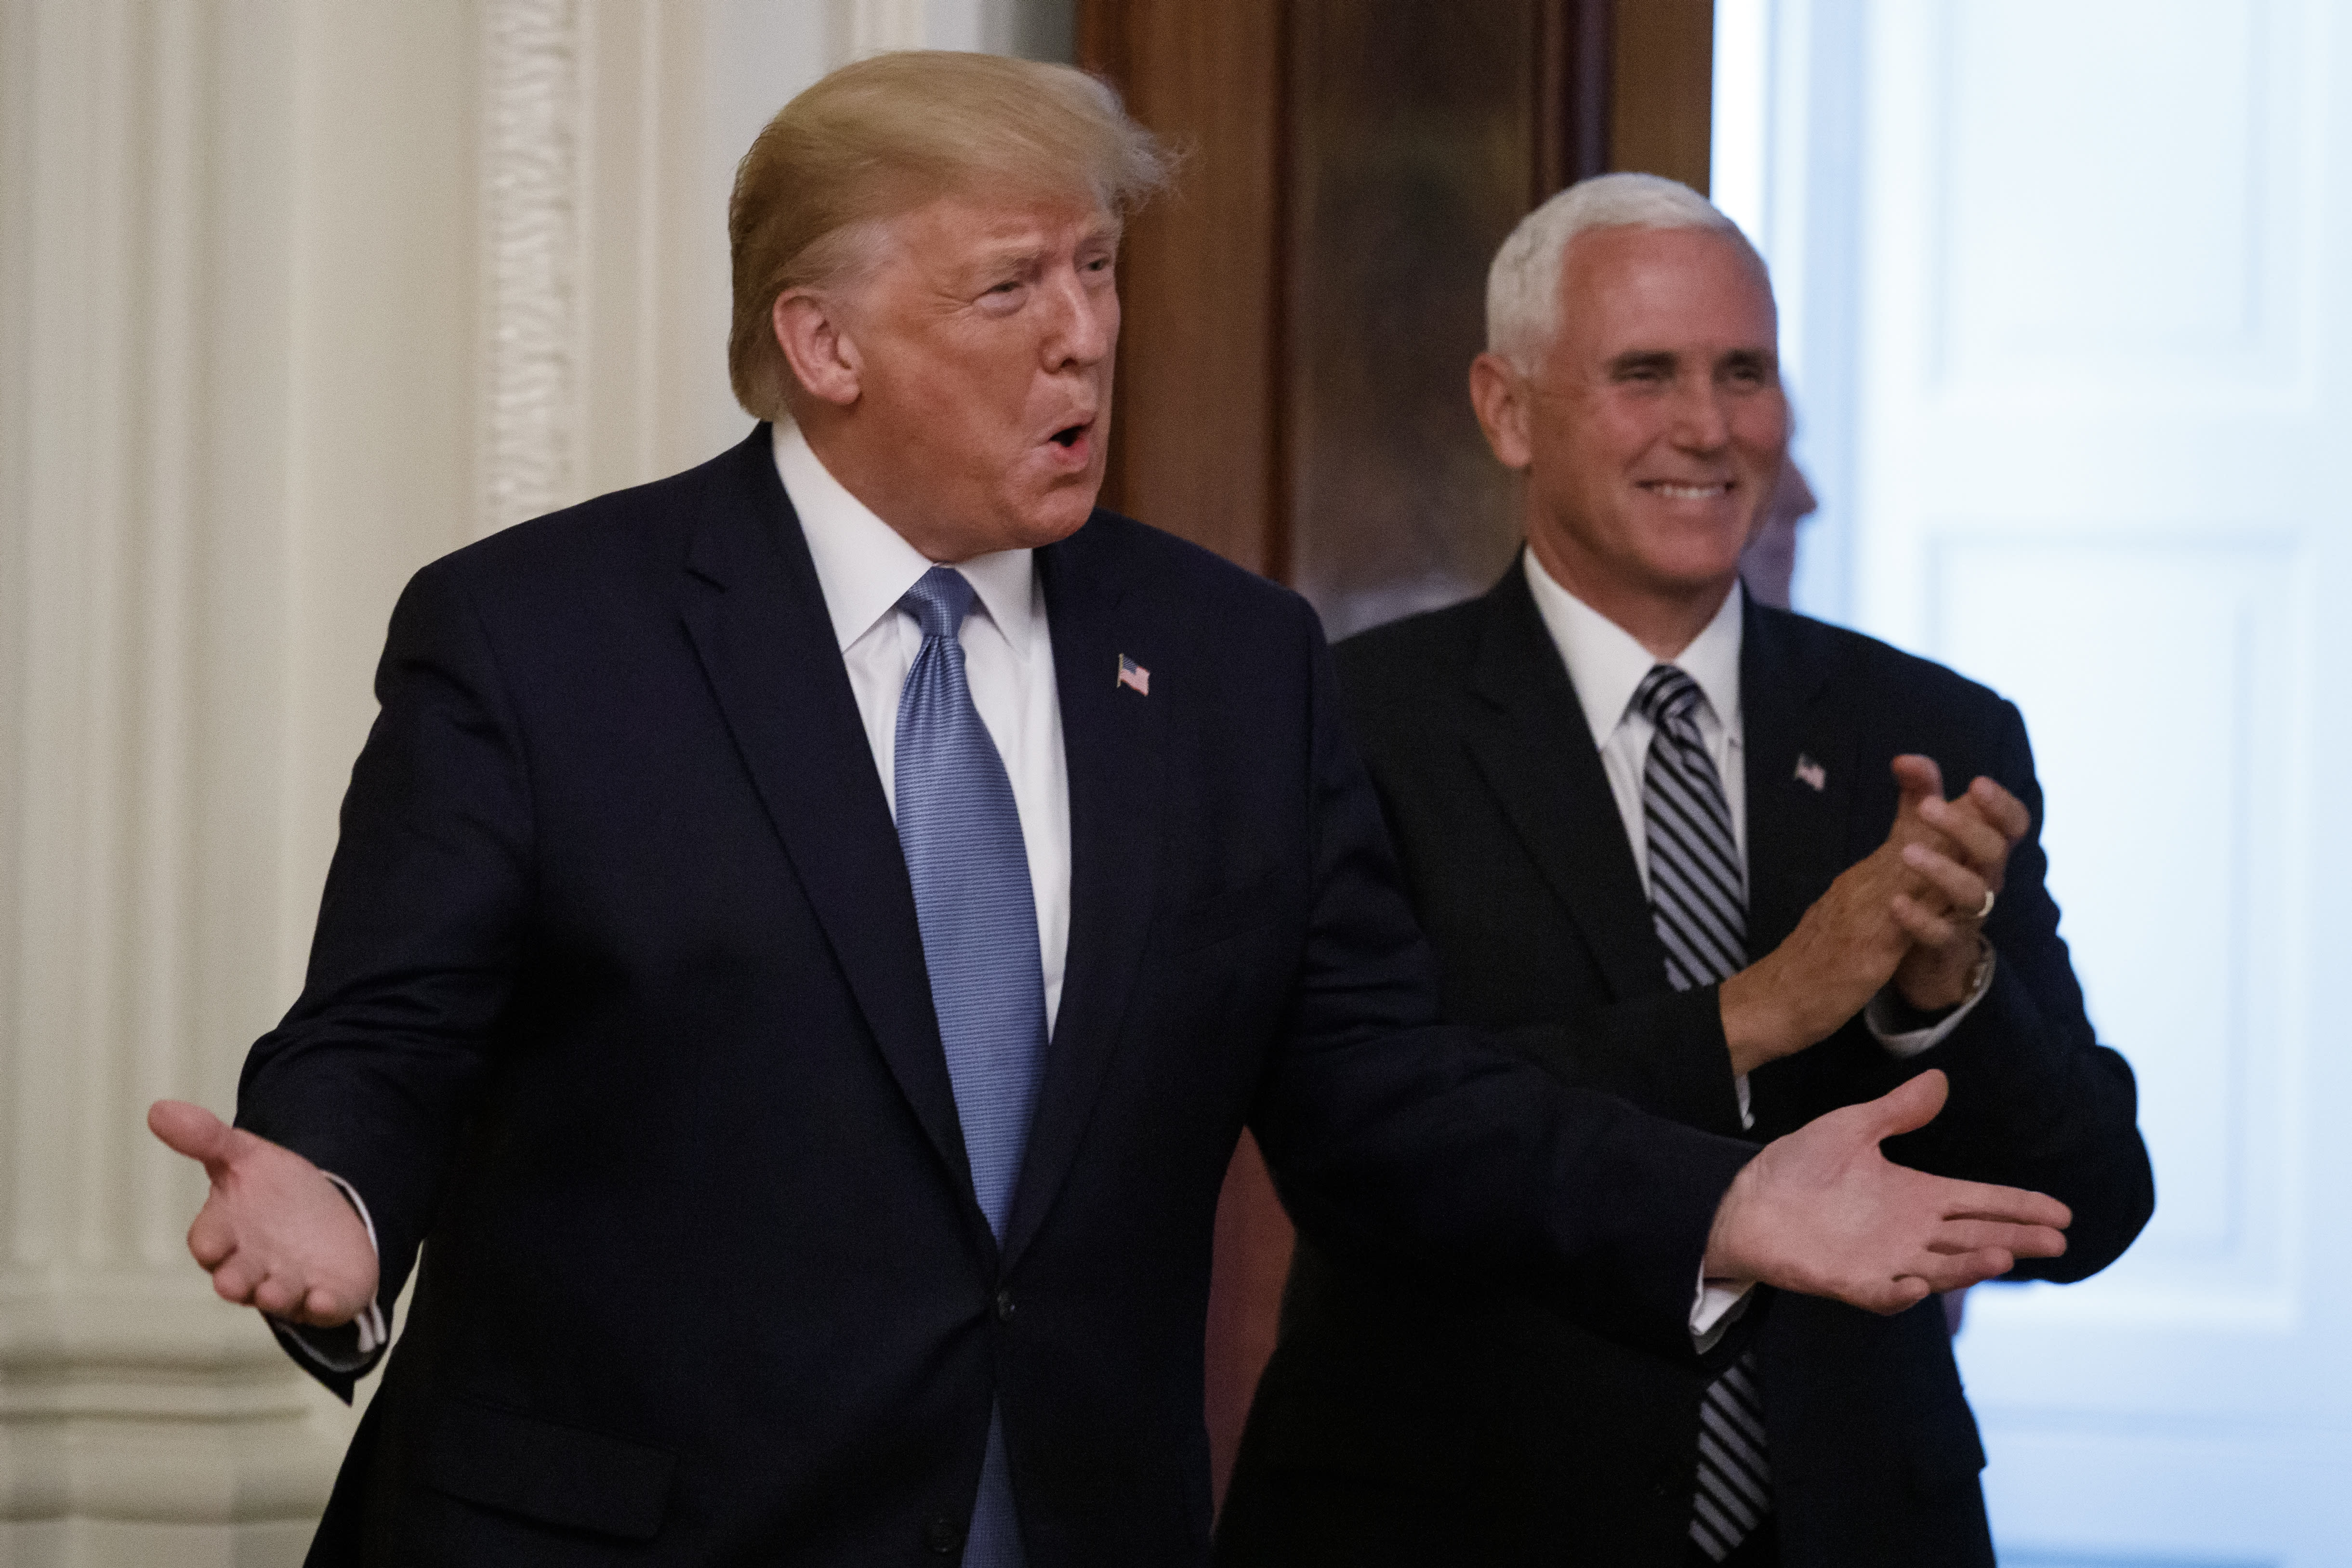 President Donald Trump, and Vice President Mike Pence arrive to at the Young Black Leadership Summit at the White House in Washington, Friday, Oct. 4, 2019. (AP Photo/Carolyn Kaster)